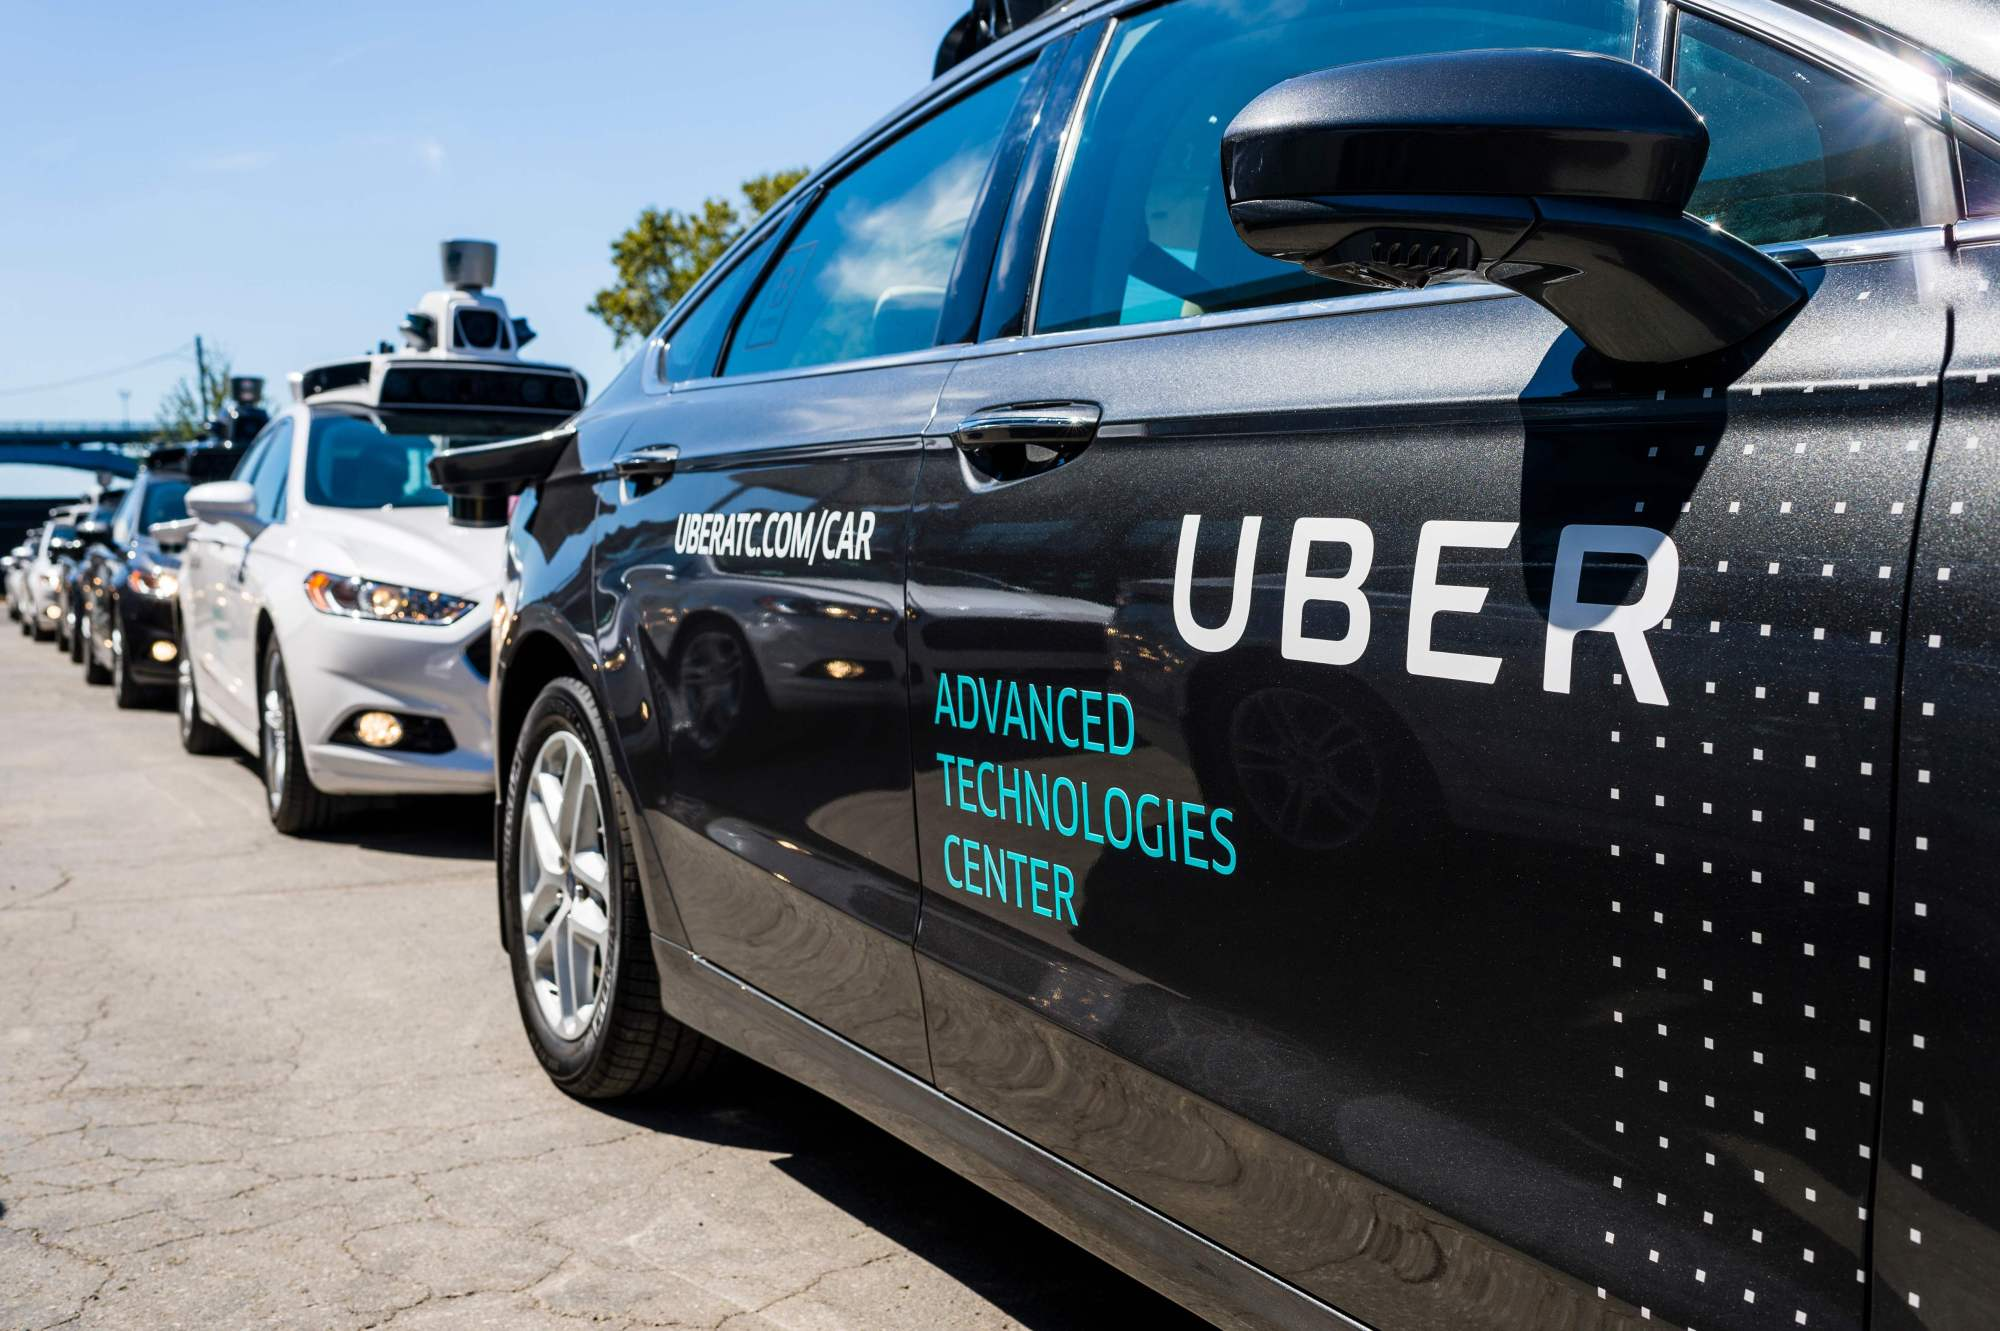 Pilot models of the Uber self-driving car are displayed at the Uber Advanced Technologies Center in Pittsburgh, Pennsylvania in September 2016. Toyota will pump about $500 million into the ride-hailing giant as part of a deal to work together on mass-producing self-driving vehicles, the carmaker said Tuesday. | AFP-JIJI